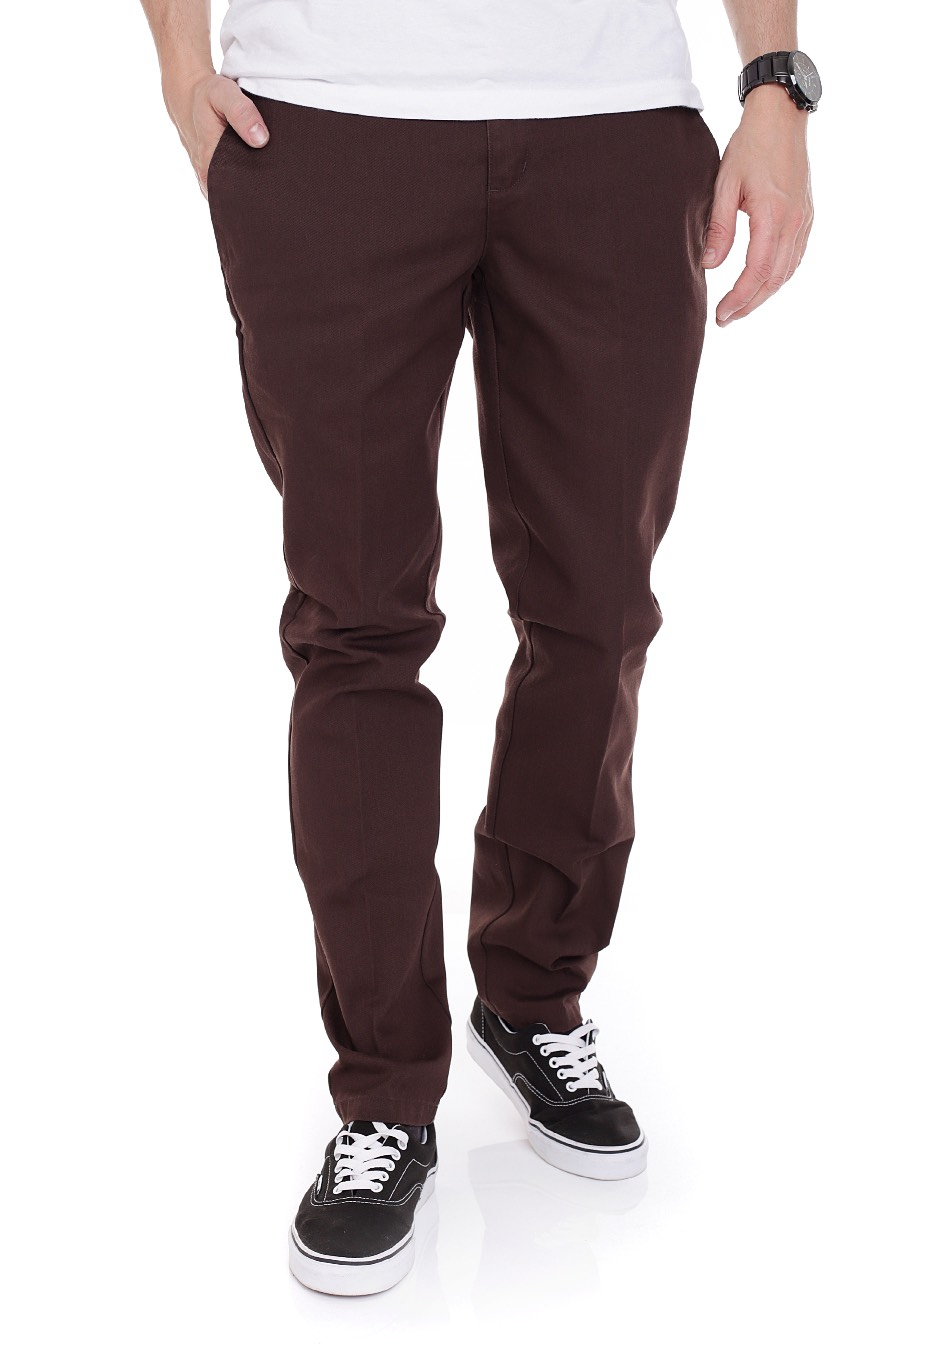 fashionable style search for authentic discover latest trends Dickies - Slim Fit Work 872 Chocolate Brown - Pants